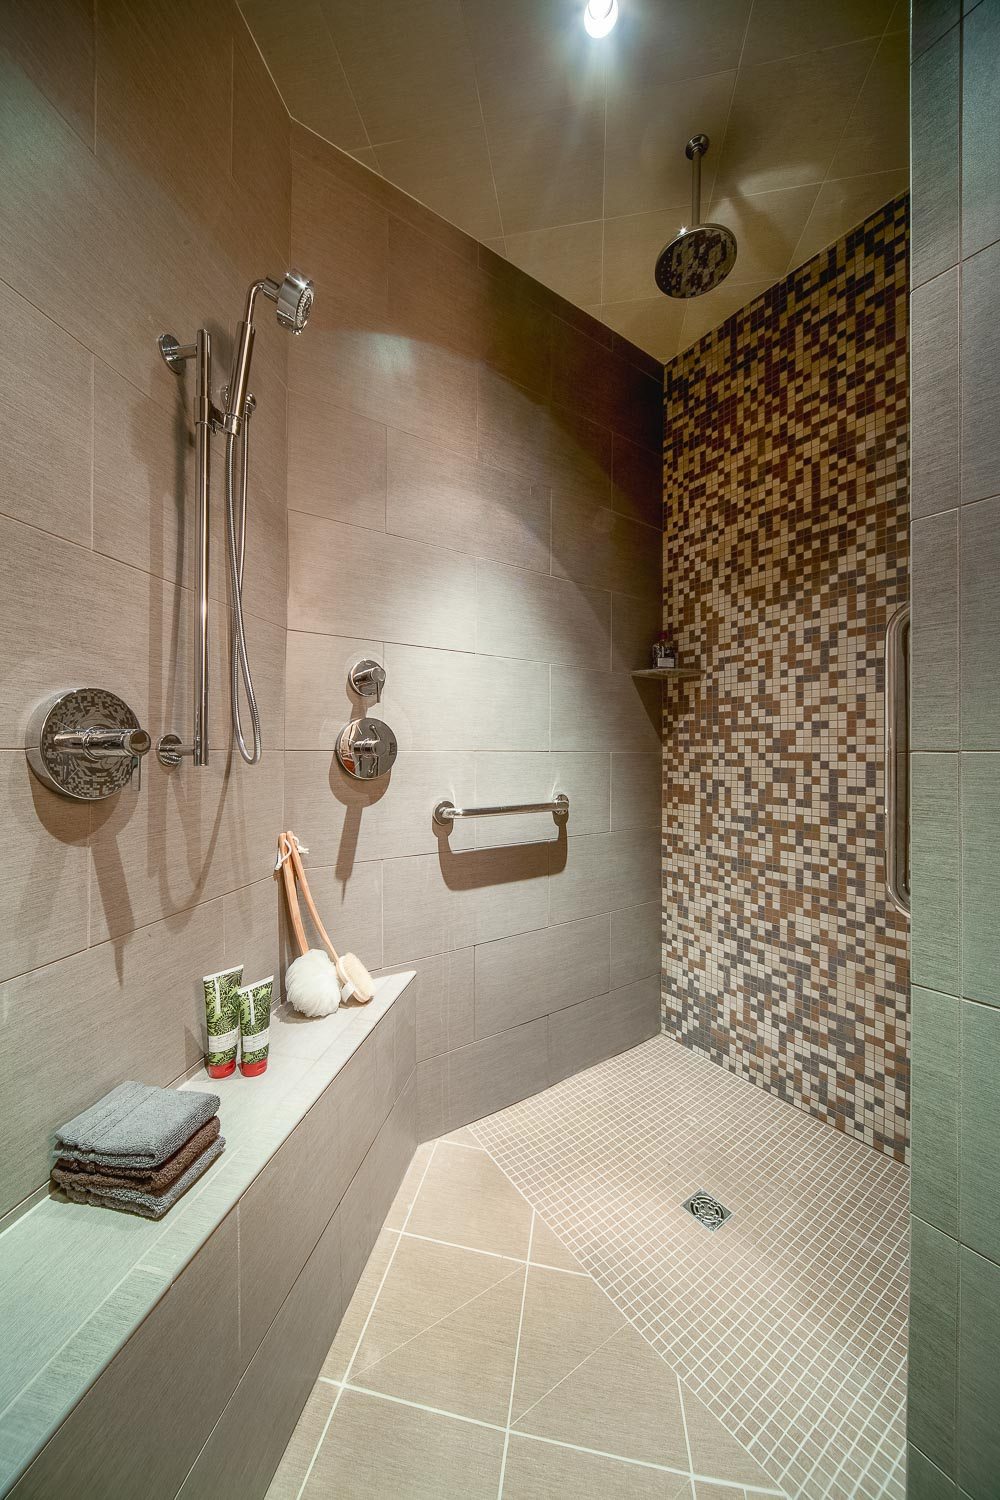 this walk-in shower boasts a zero-threshold entry for aging-in-place and ada ACCESSIBILITY. it has a rain shower head with hand shower and body sprays.